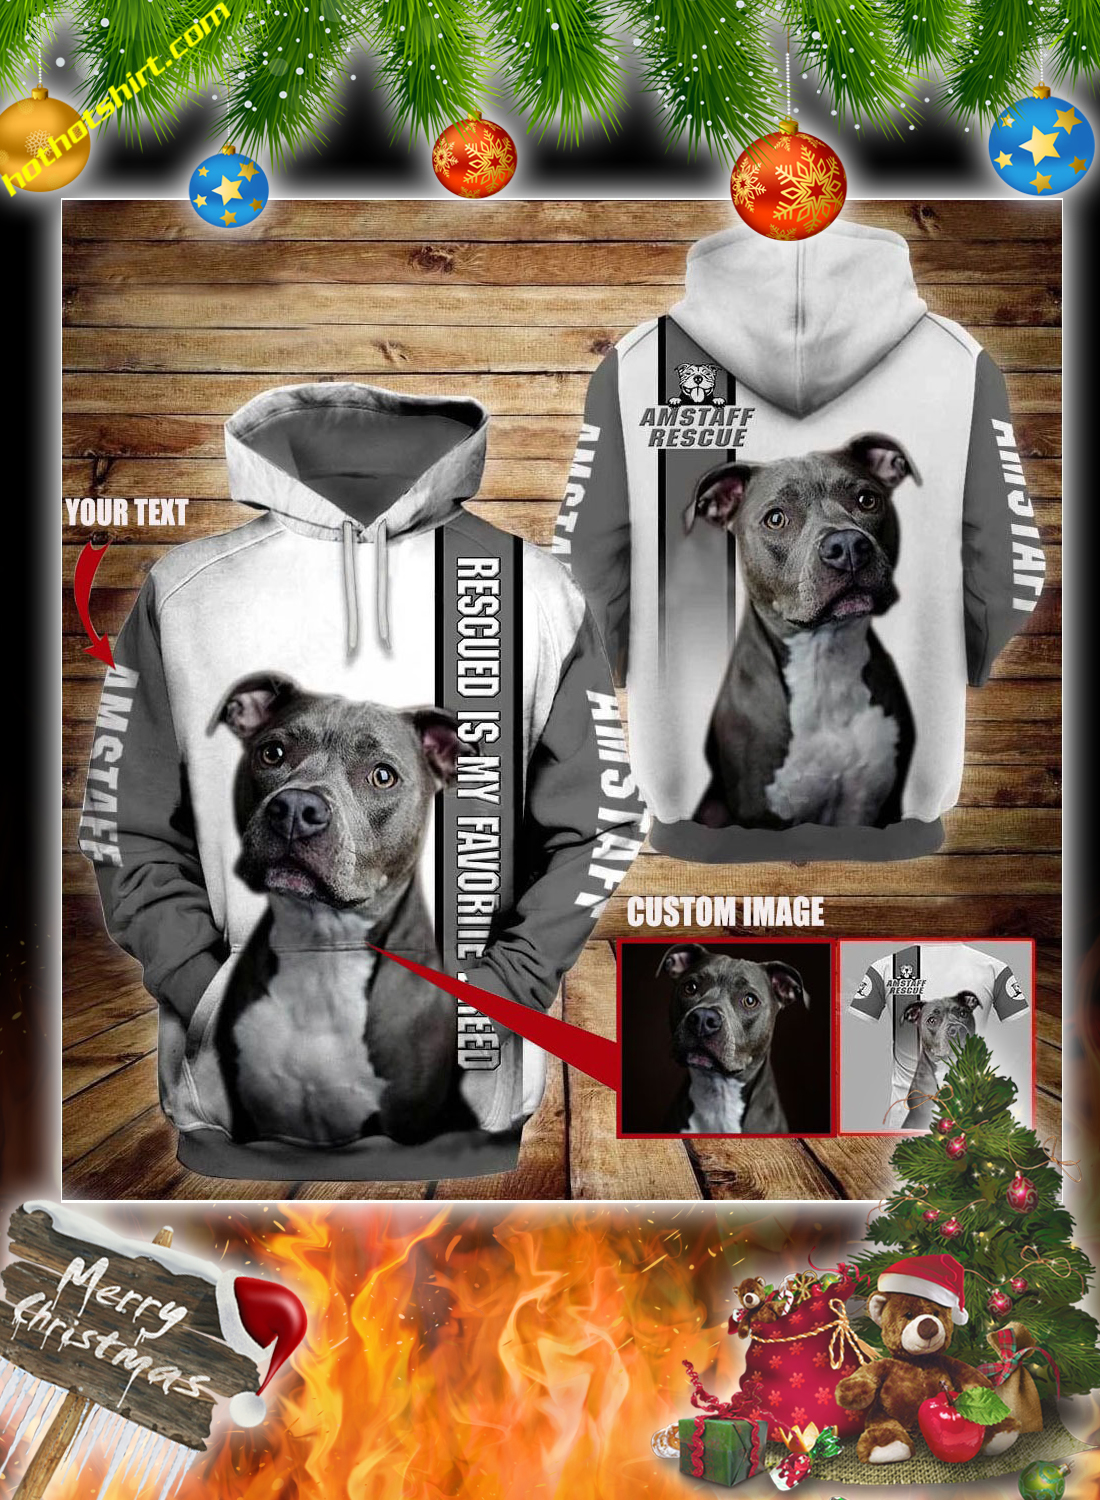 Personalized Pitbull am staff rescue custom image and text 3d hoodie